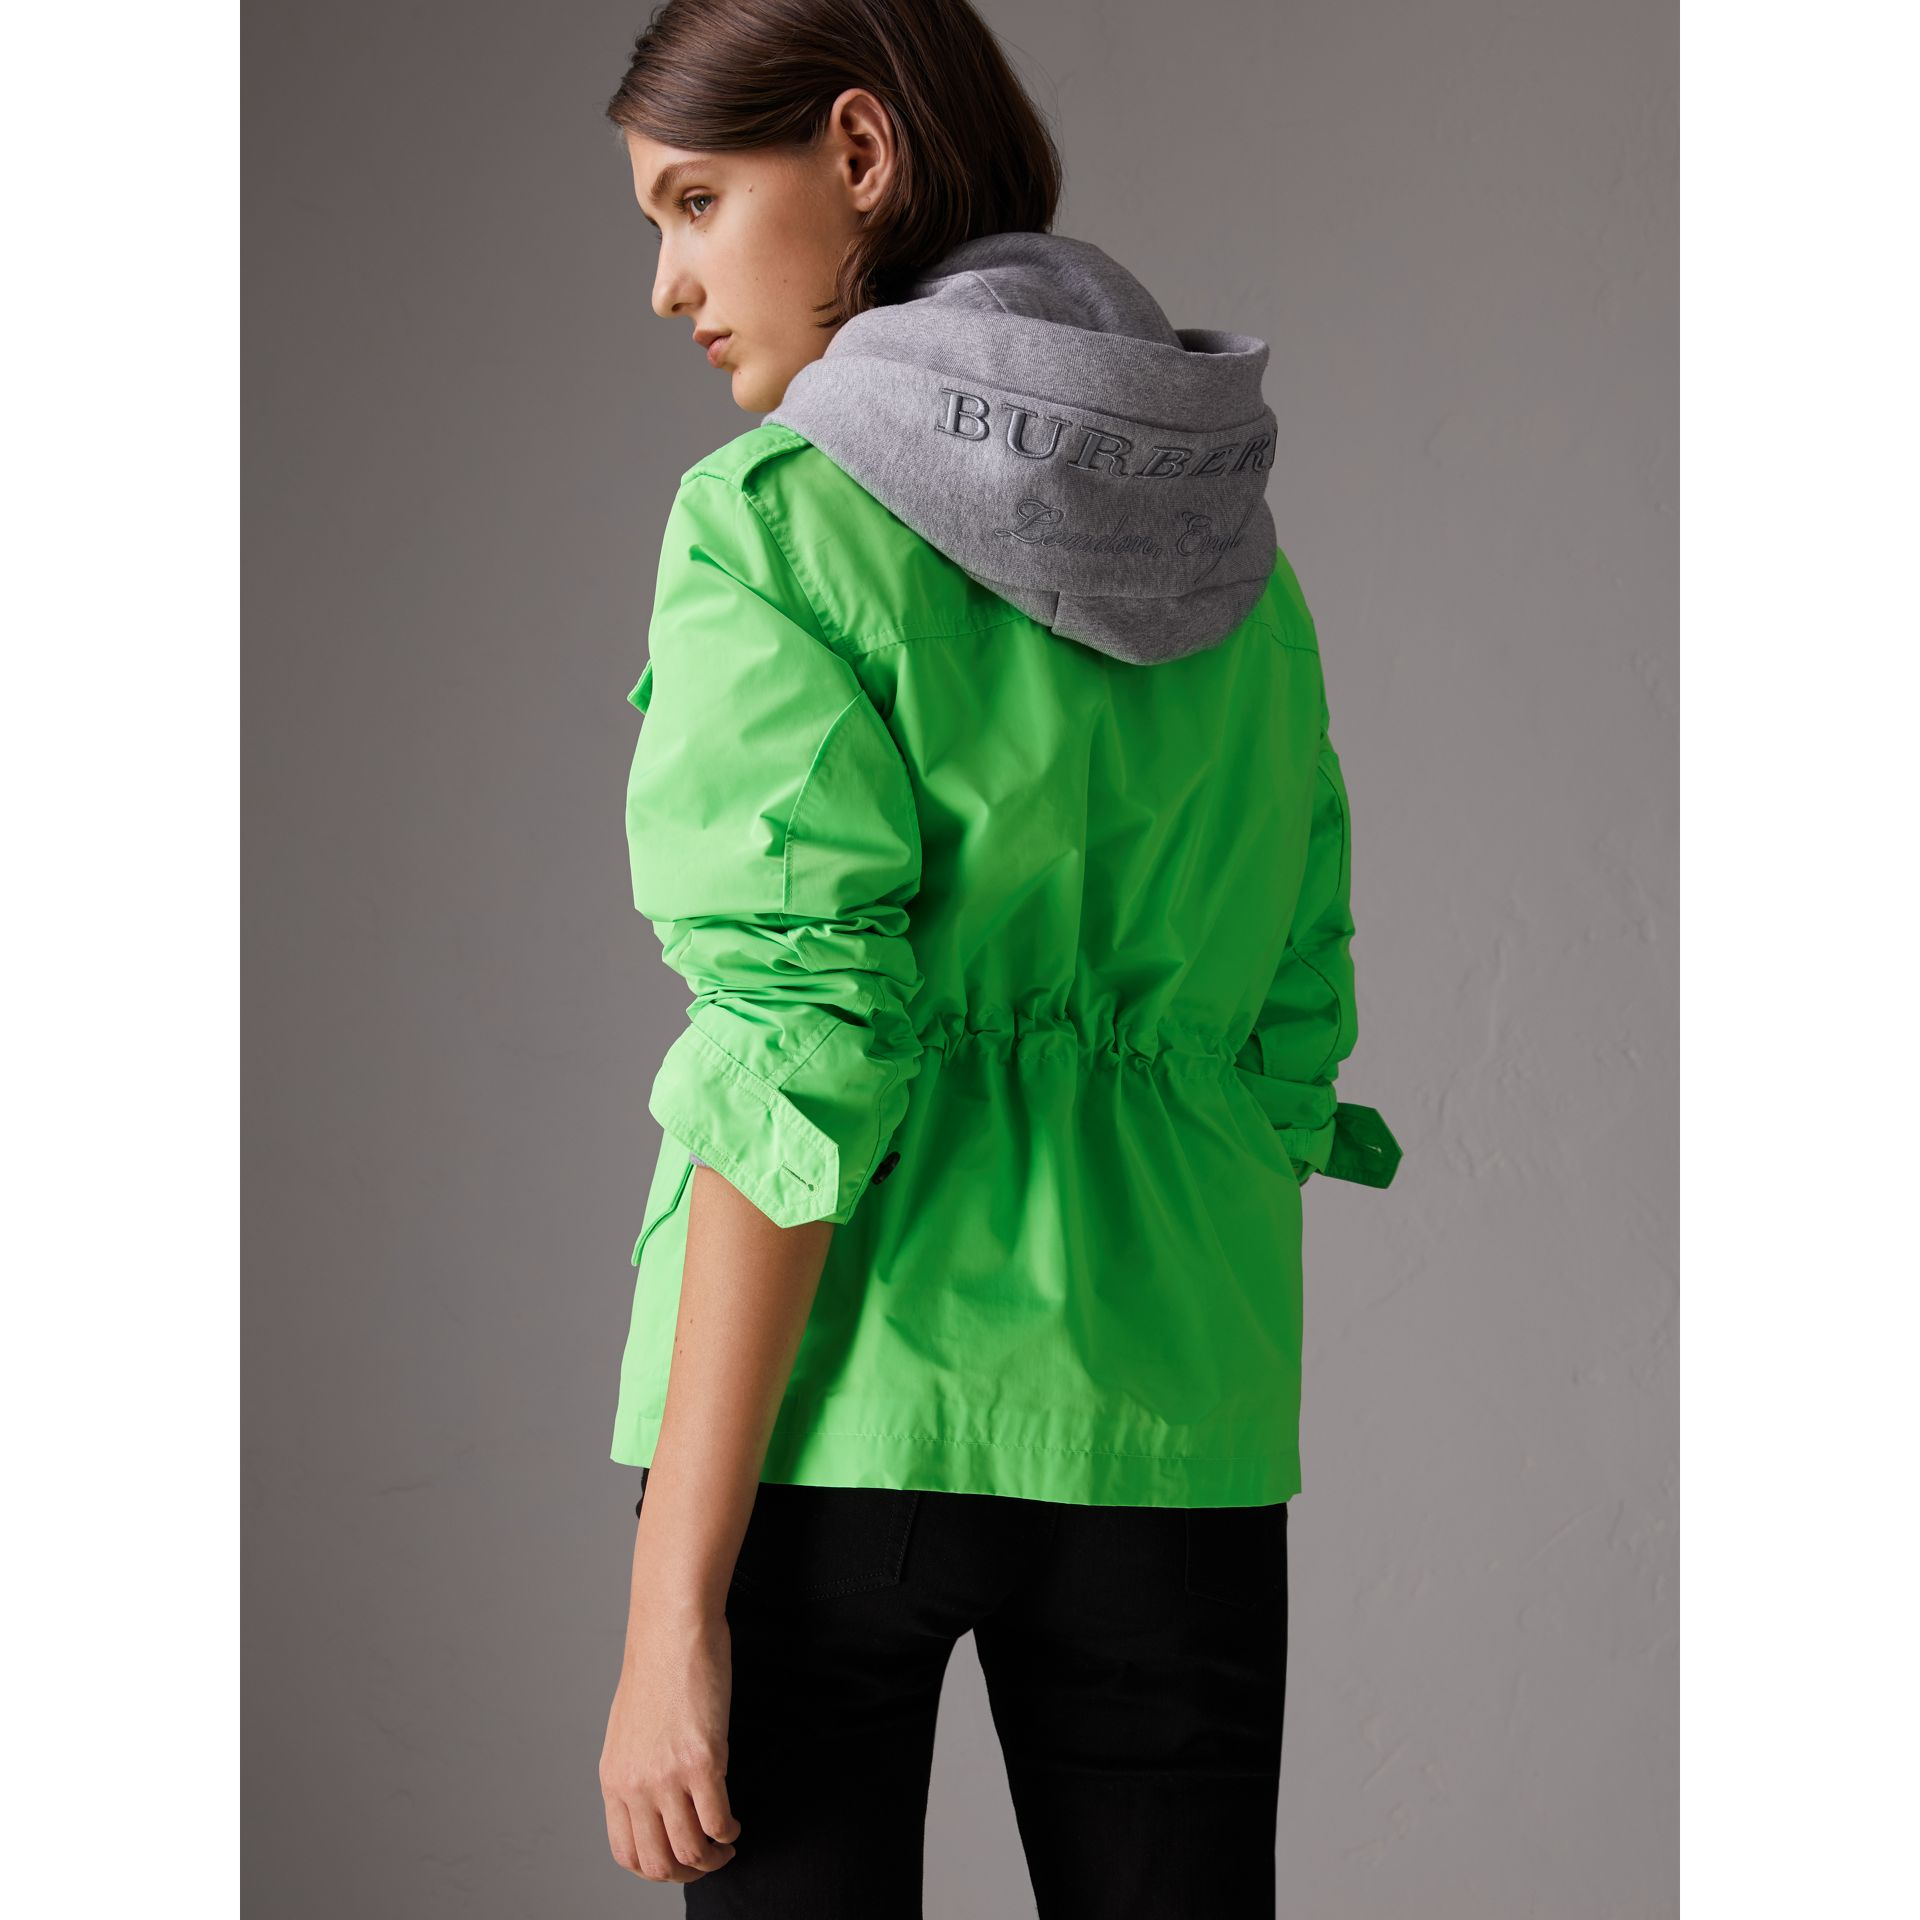 Taffeta Field Jacket in Neon Green - Women | Burberry - gallery image 2